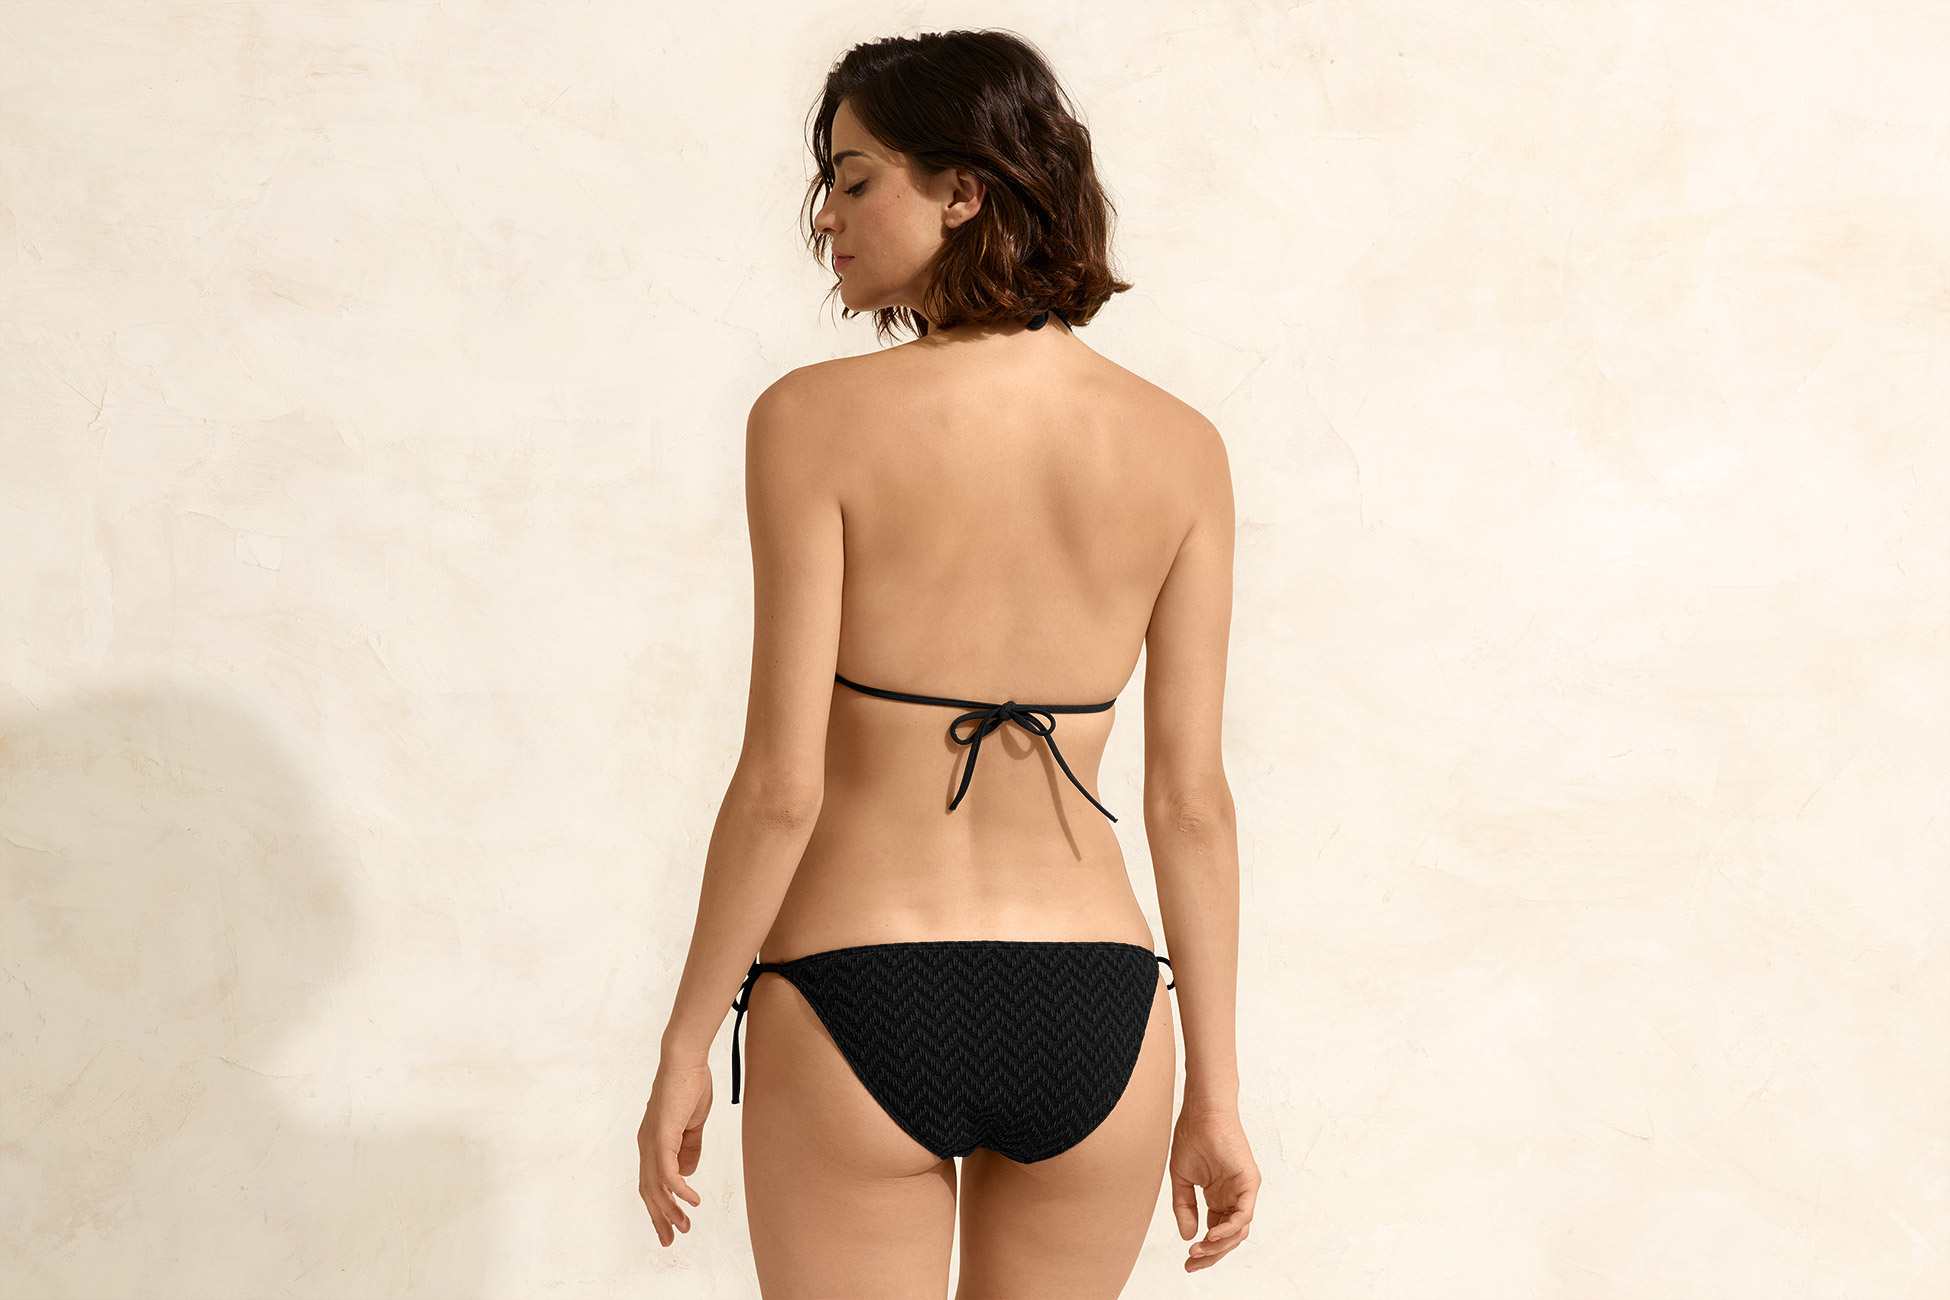 Twill Thin bikini briefs standard view 3